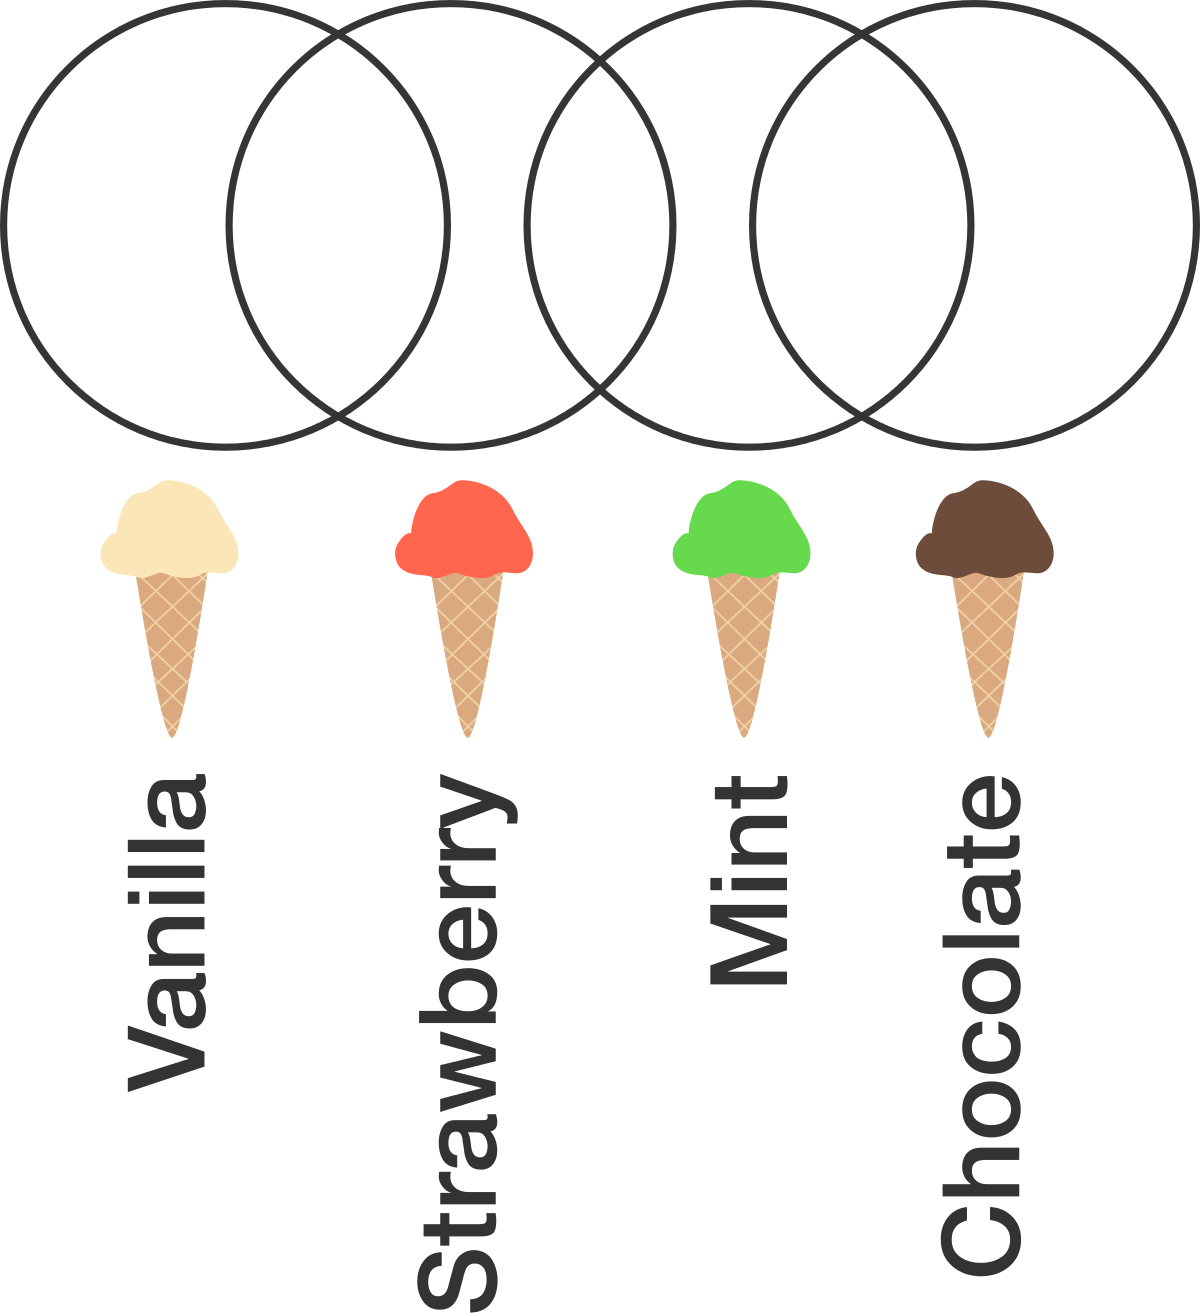 Euler And Venn Diagrams Warmup Practice Problems Online Brilliant Logic Diagram Pictured Above Is A Complete Of The Data From An Ice Cream Preferences Survey With Four Flavors Asked People To Check Off All